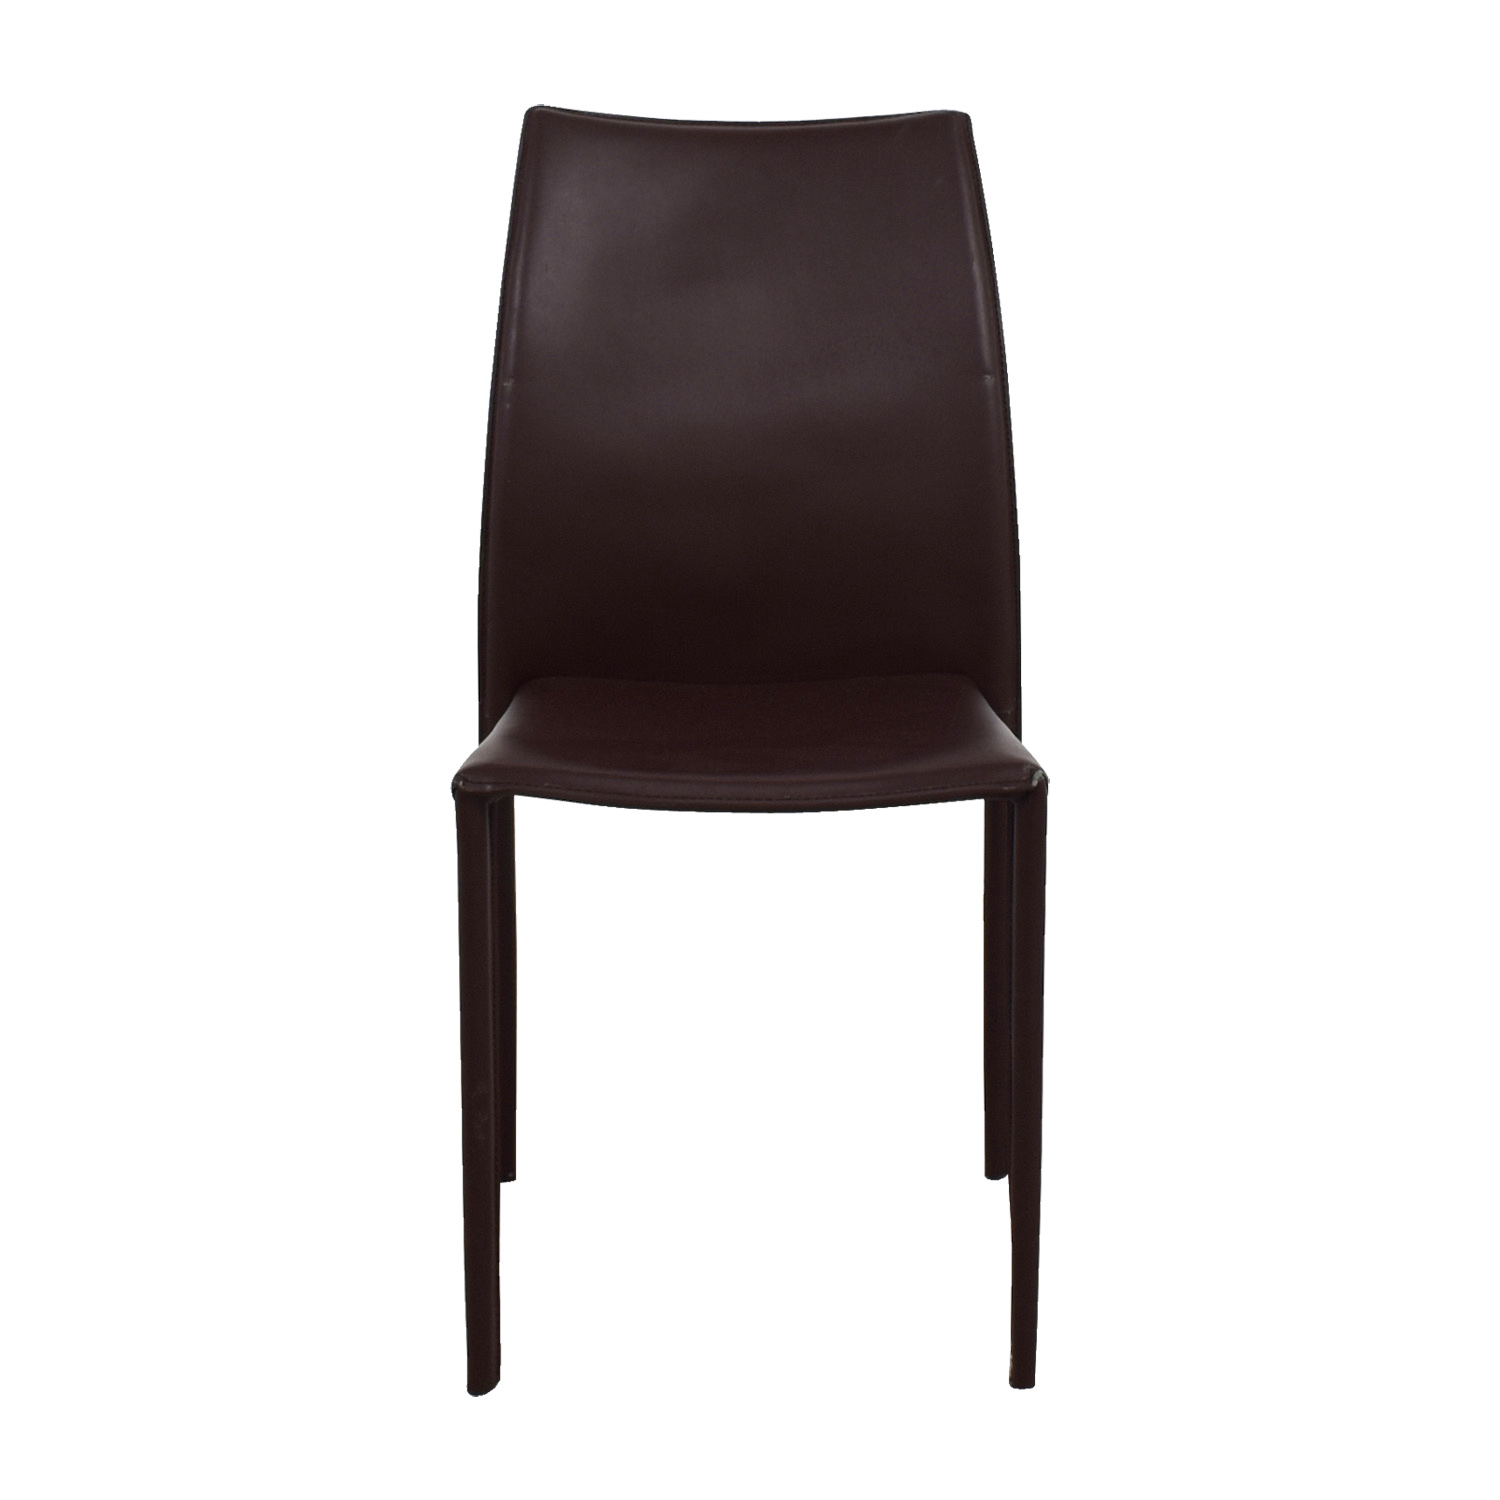 CB2 CB2 Brown Chair nj